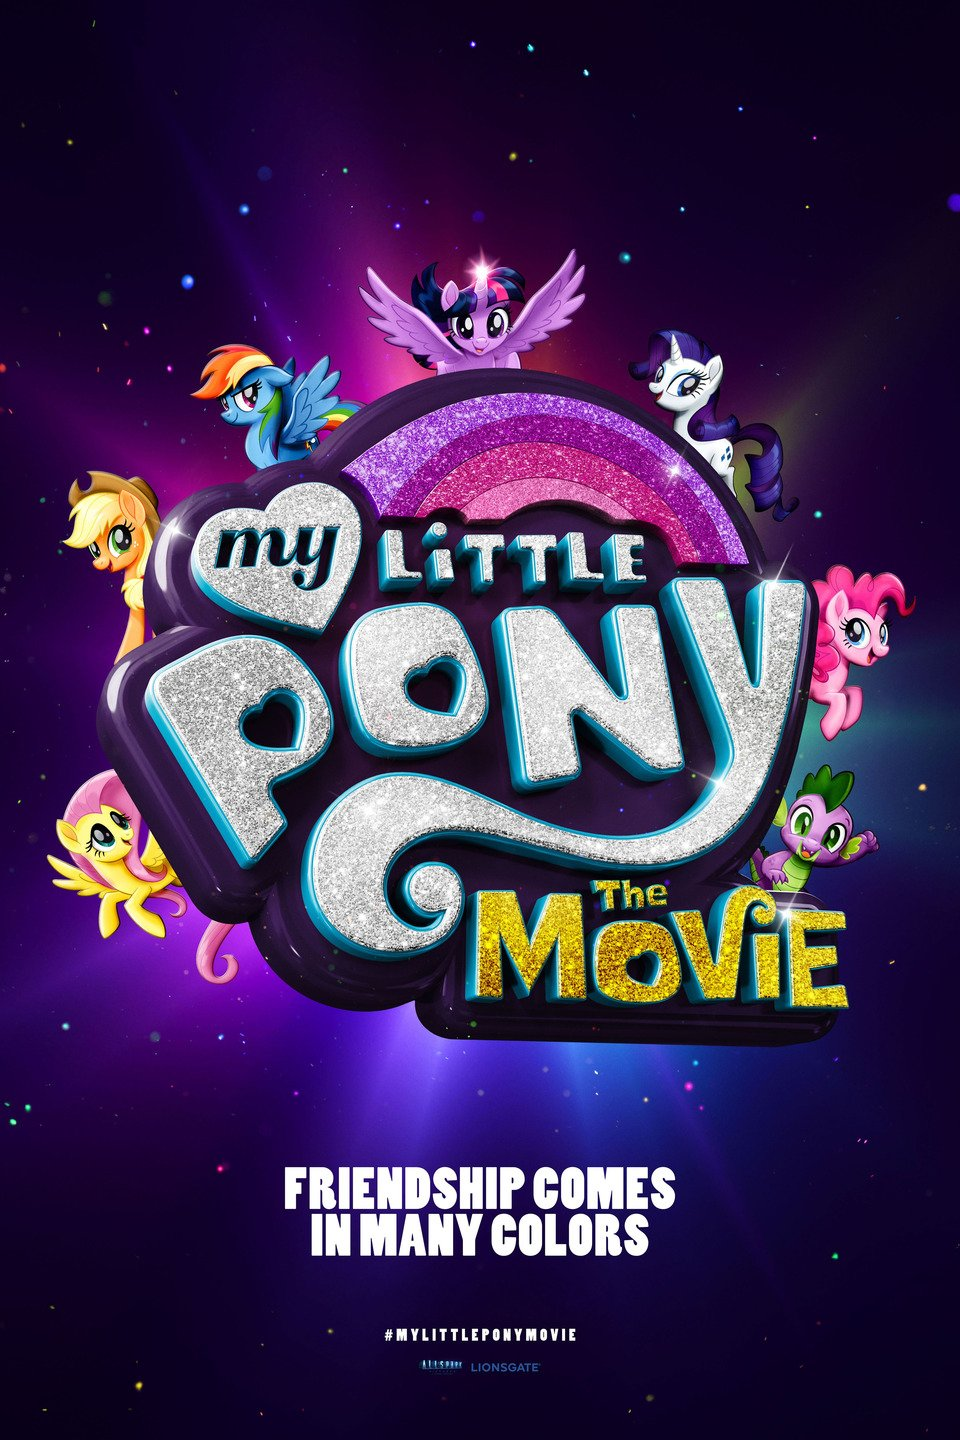 My Little Pony: The Movie poster art